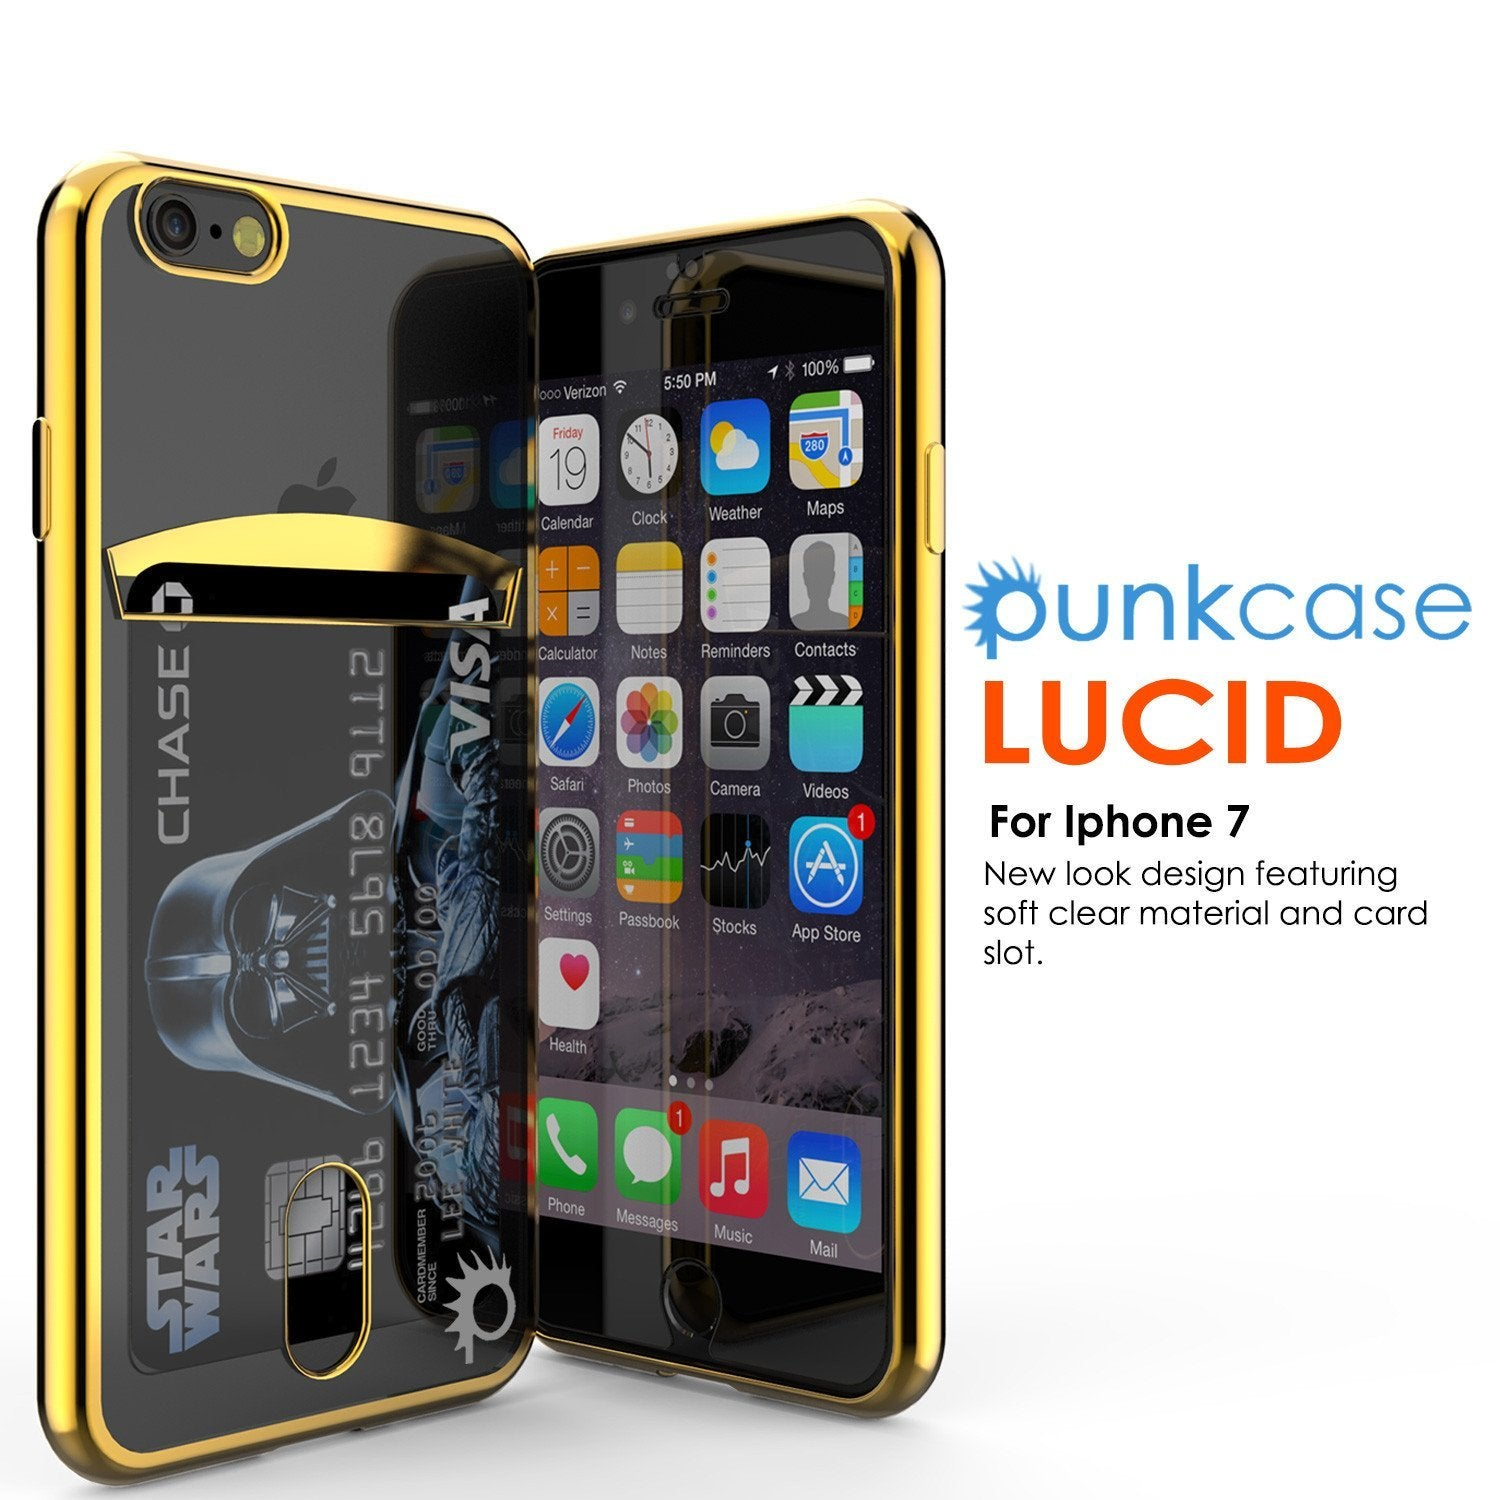 iPhone 8+ Plus Case, PUNKCASE® LUCID Gold Series | Card Slot | SHIELD Screen Protector | Ultra fit